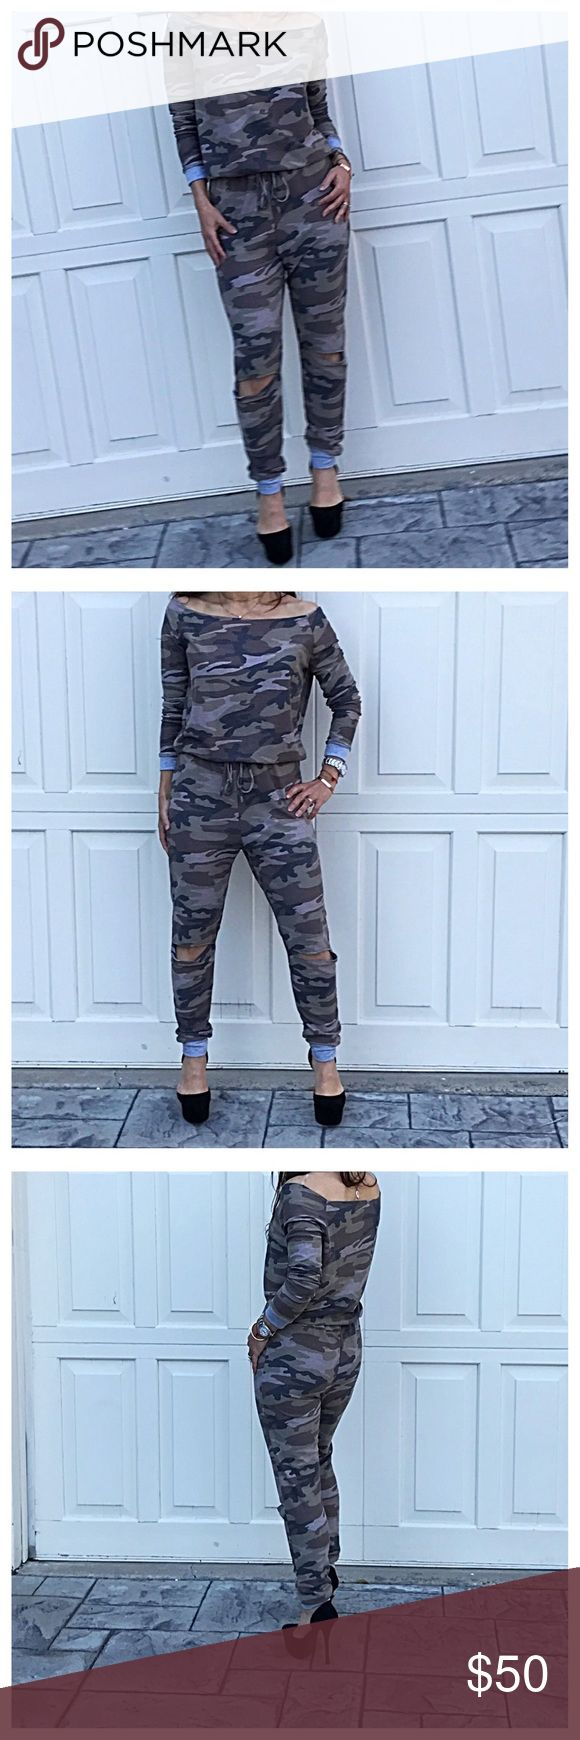 🆕 camouflage jumpsuit Chic unique scooped neck camouflage cut knee tie waist jumpsuit PLEASE Use the Poshmark new option you can purchase and it will give you the option to pick the size you want ( all sizes are available) BUNDLE and save 10% ( no trades price is firm unless bundled) Pants Jumpsuits & Rompers